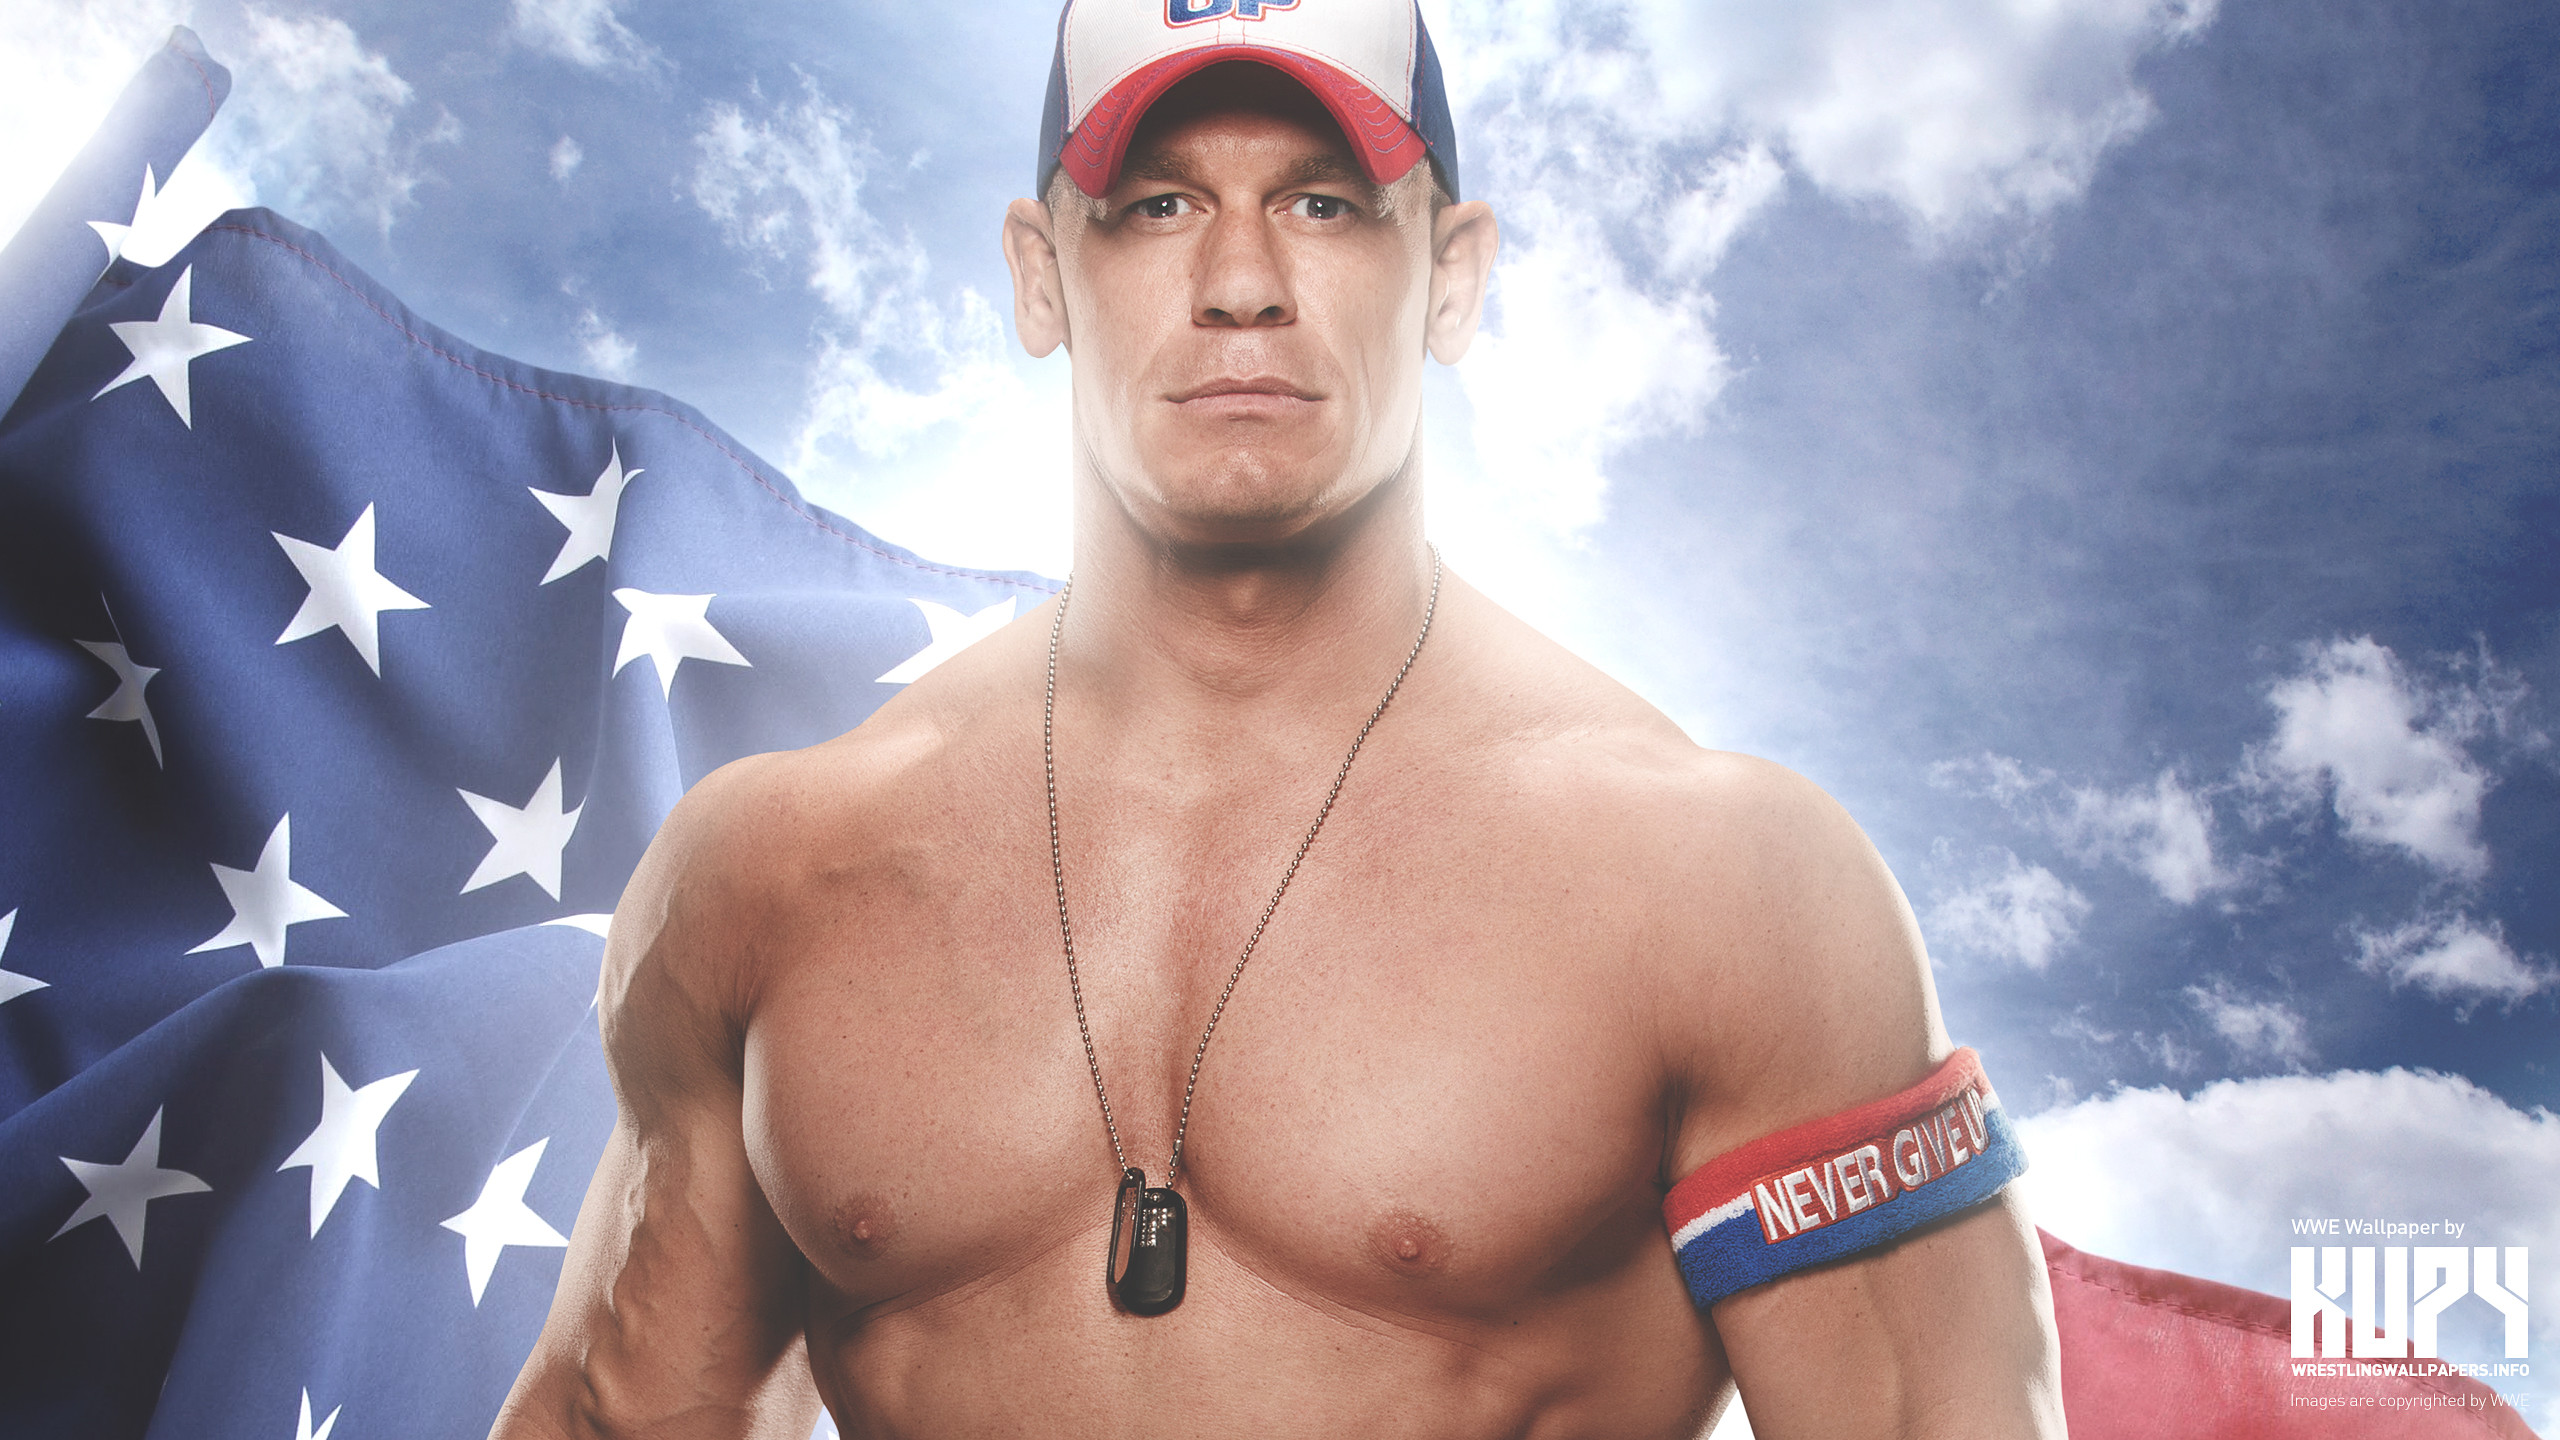 WWE John Cena Wallpaper 2017 HD ·①